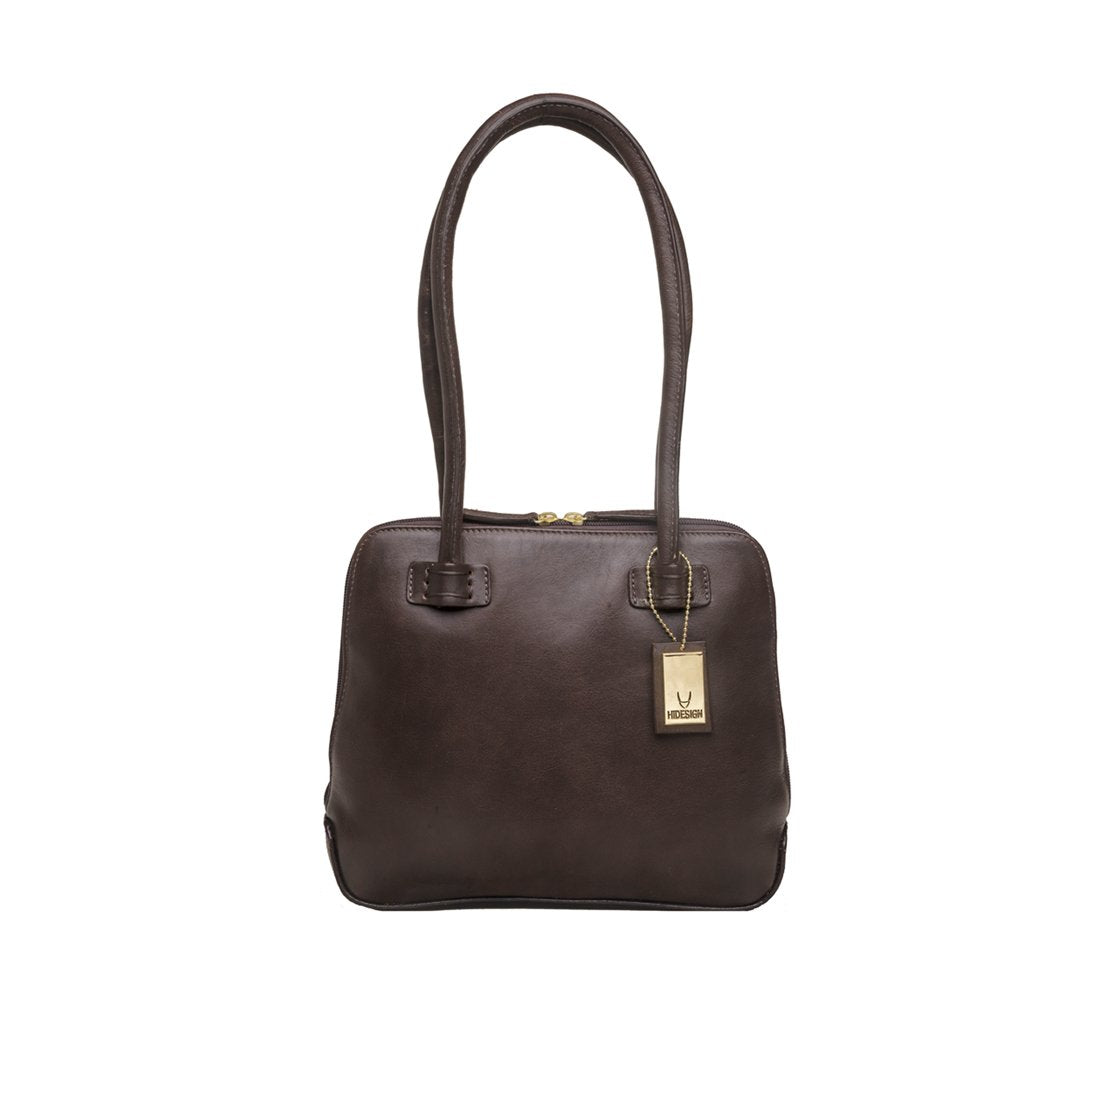 ESTELLE SMALL SHOULDER BAG